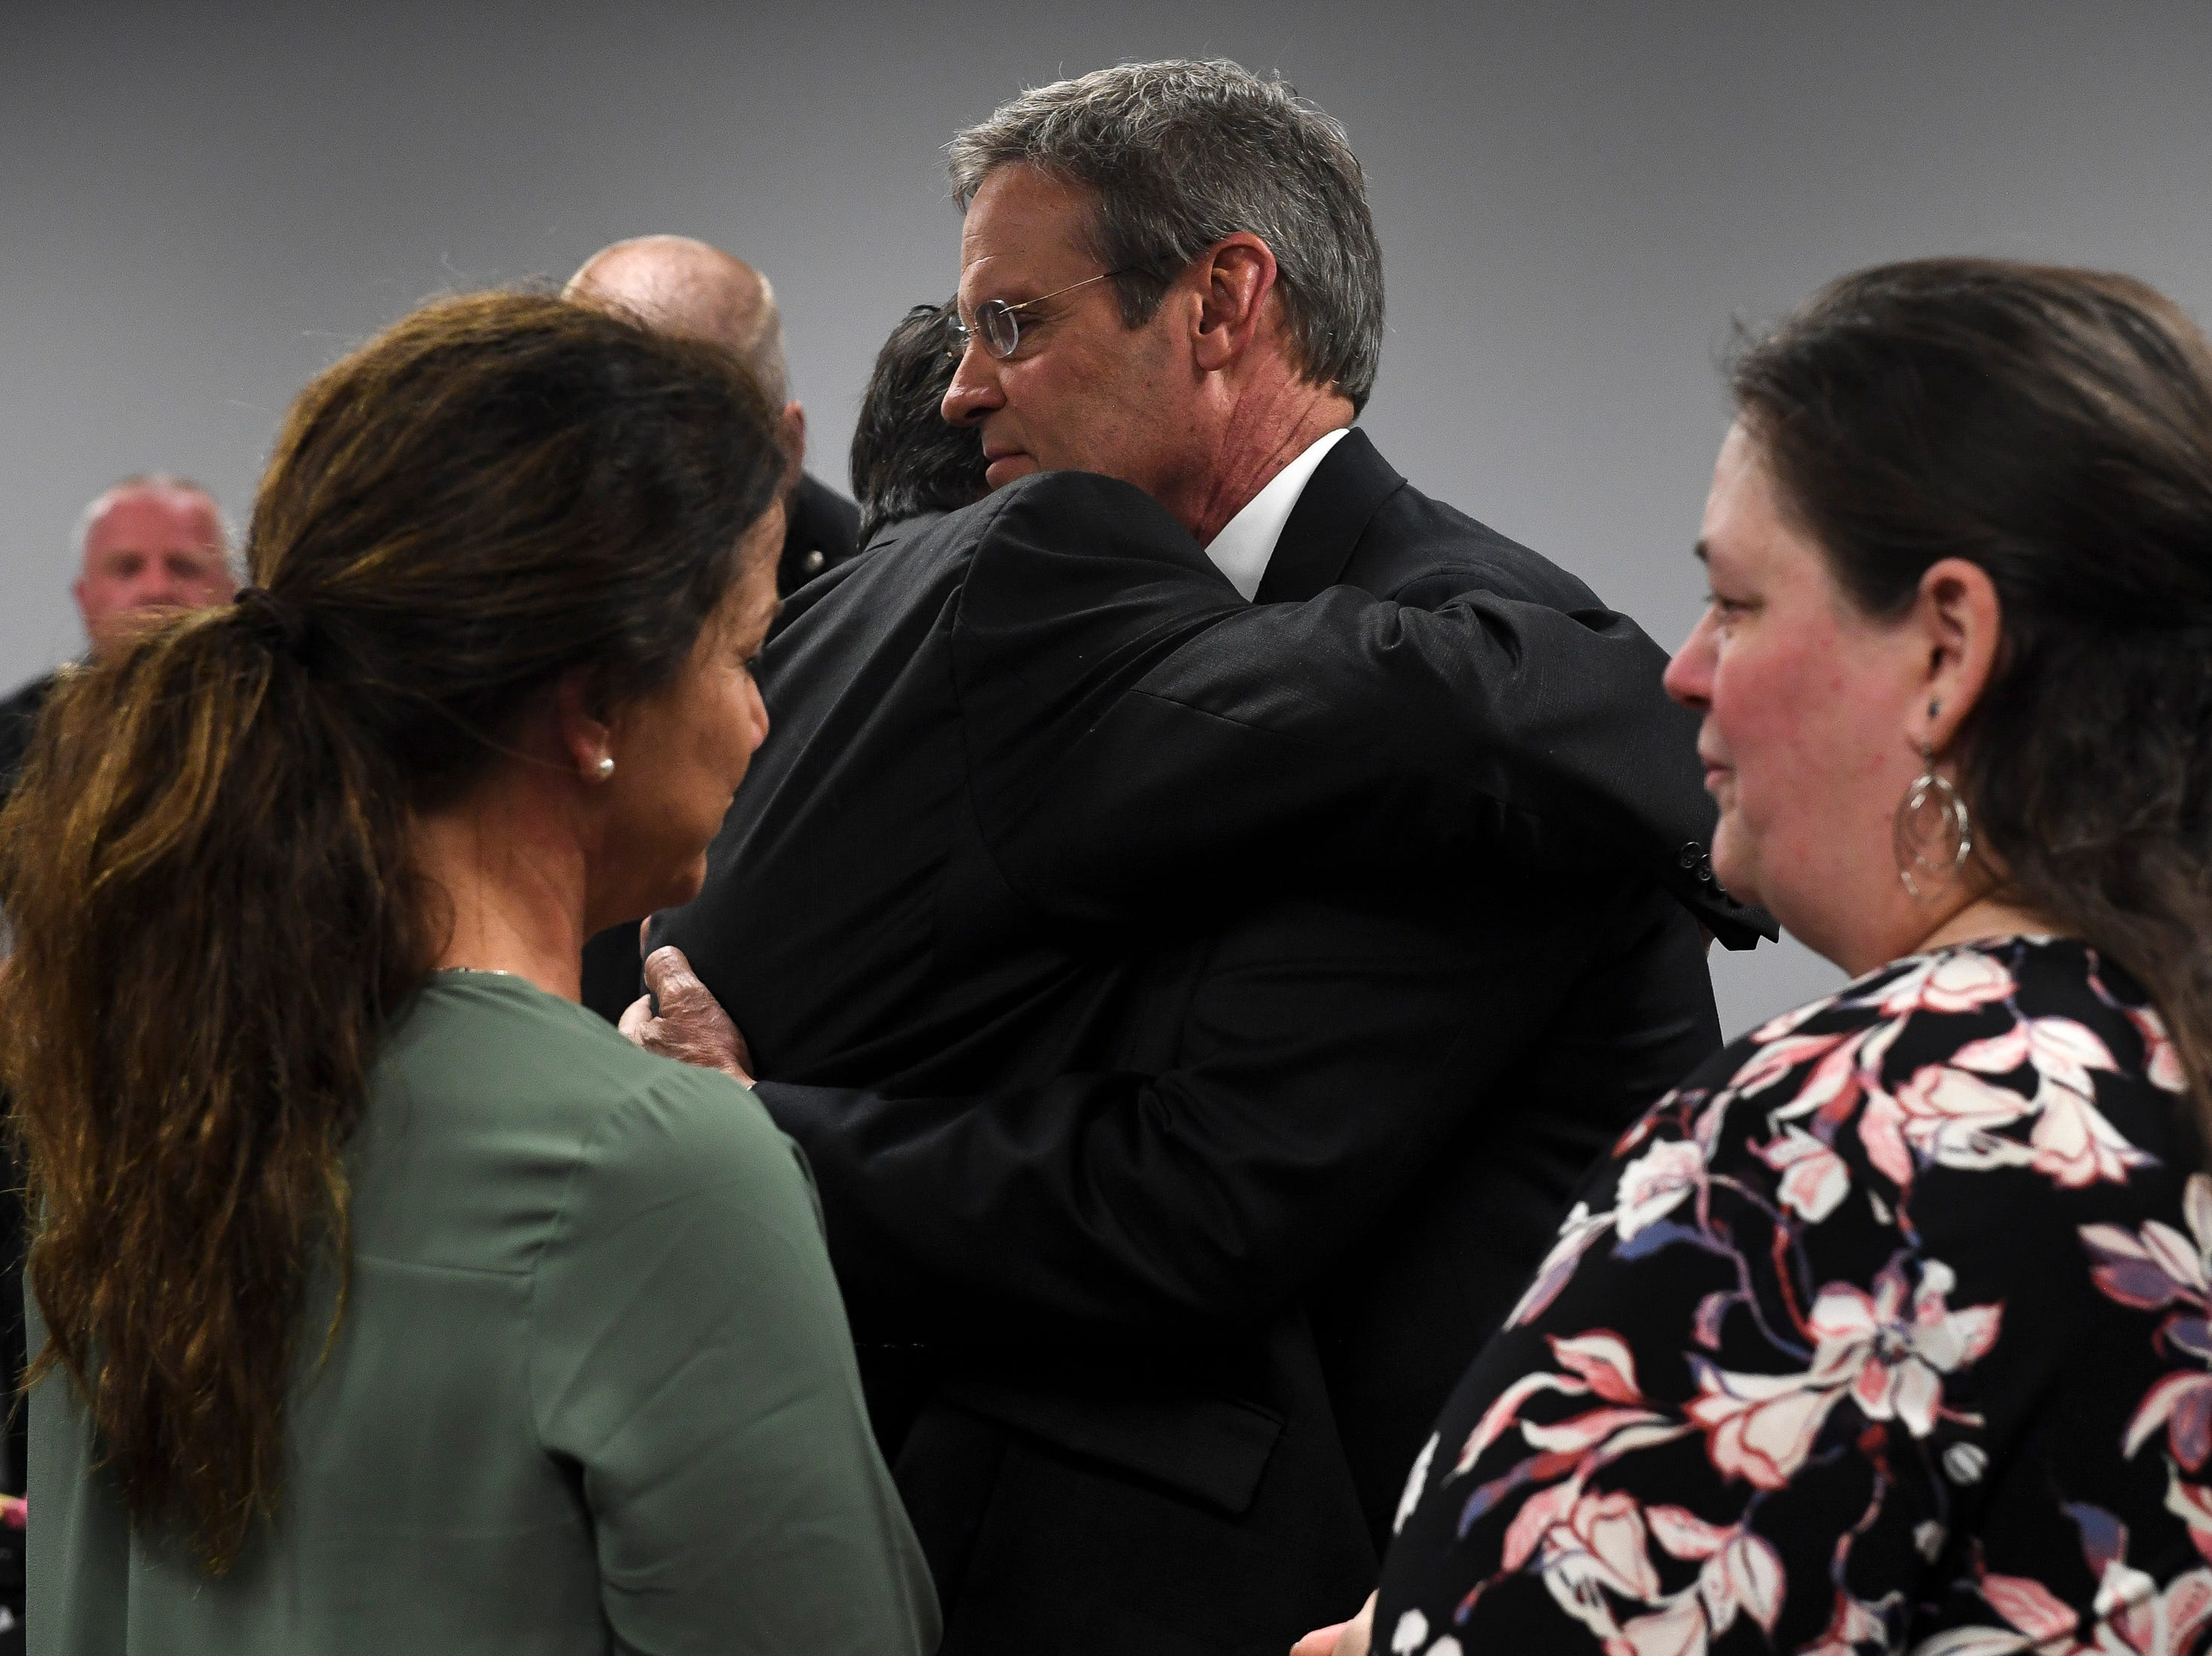 Tennessee Governor Bill Lee hugs Chris Gatti, father of Matthew Gatti, as first lady Maria Lee, left, chats with Christy Gatti, mother of Matthew Gatti, before the funeral service for Tennessee State Trooper Matthew Gatti at West Jackson Baptist Church in Jackson, Tenn., Monday, May 13, 2019. Gatti died in the line of duty in an accident while responding to a car fire on I-40 in Madison County on May 6.